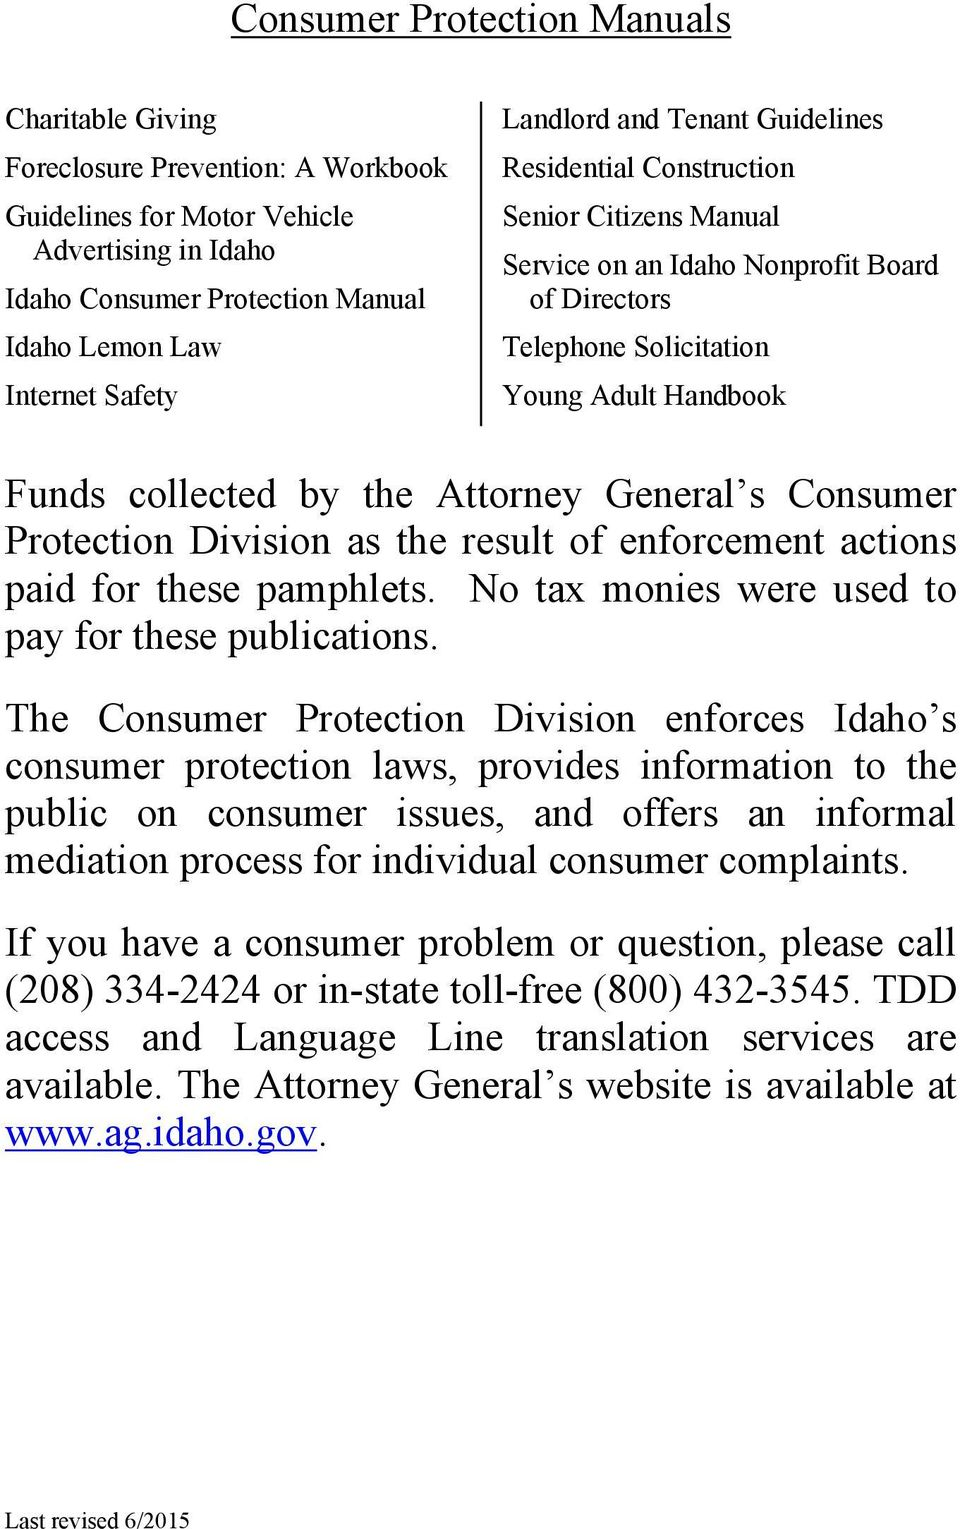 Attorney General s Consumer Protection Division as the result of enforcement actions paid for these pamphlets. No tax monies were used to pay for these publications.